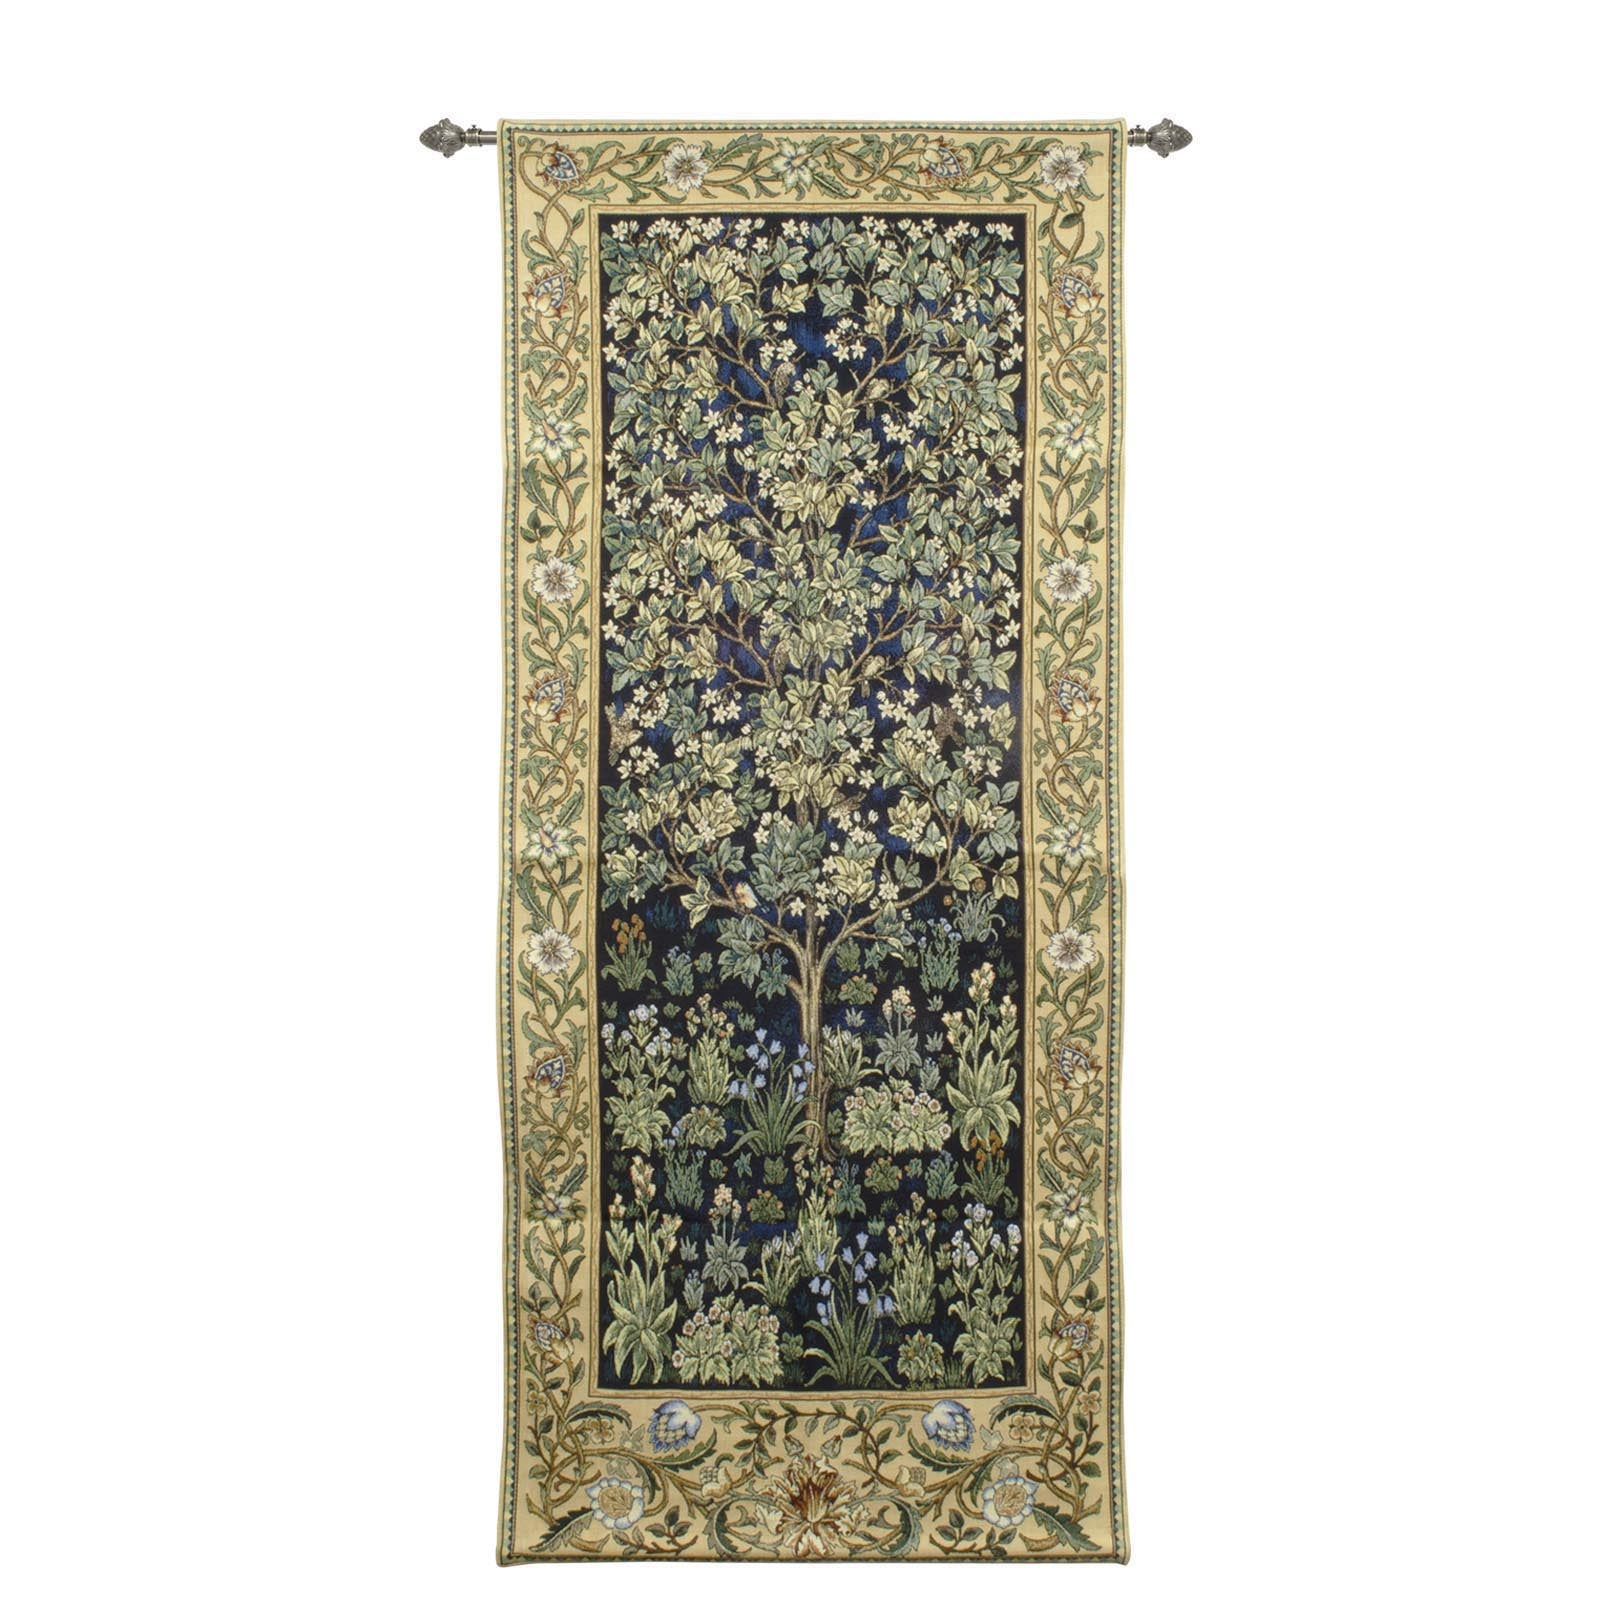 "WH-WM-TLBL-2 | WILLIAM MORRIS TREE OF LIFE BLUE 27 X 63 "" INCH WALL HANGING TAPESTRY ART - www.signareusa.com"